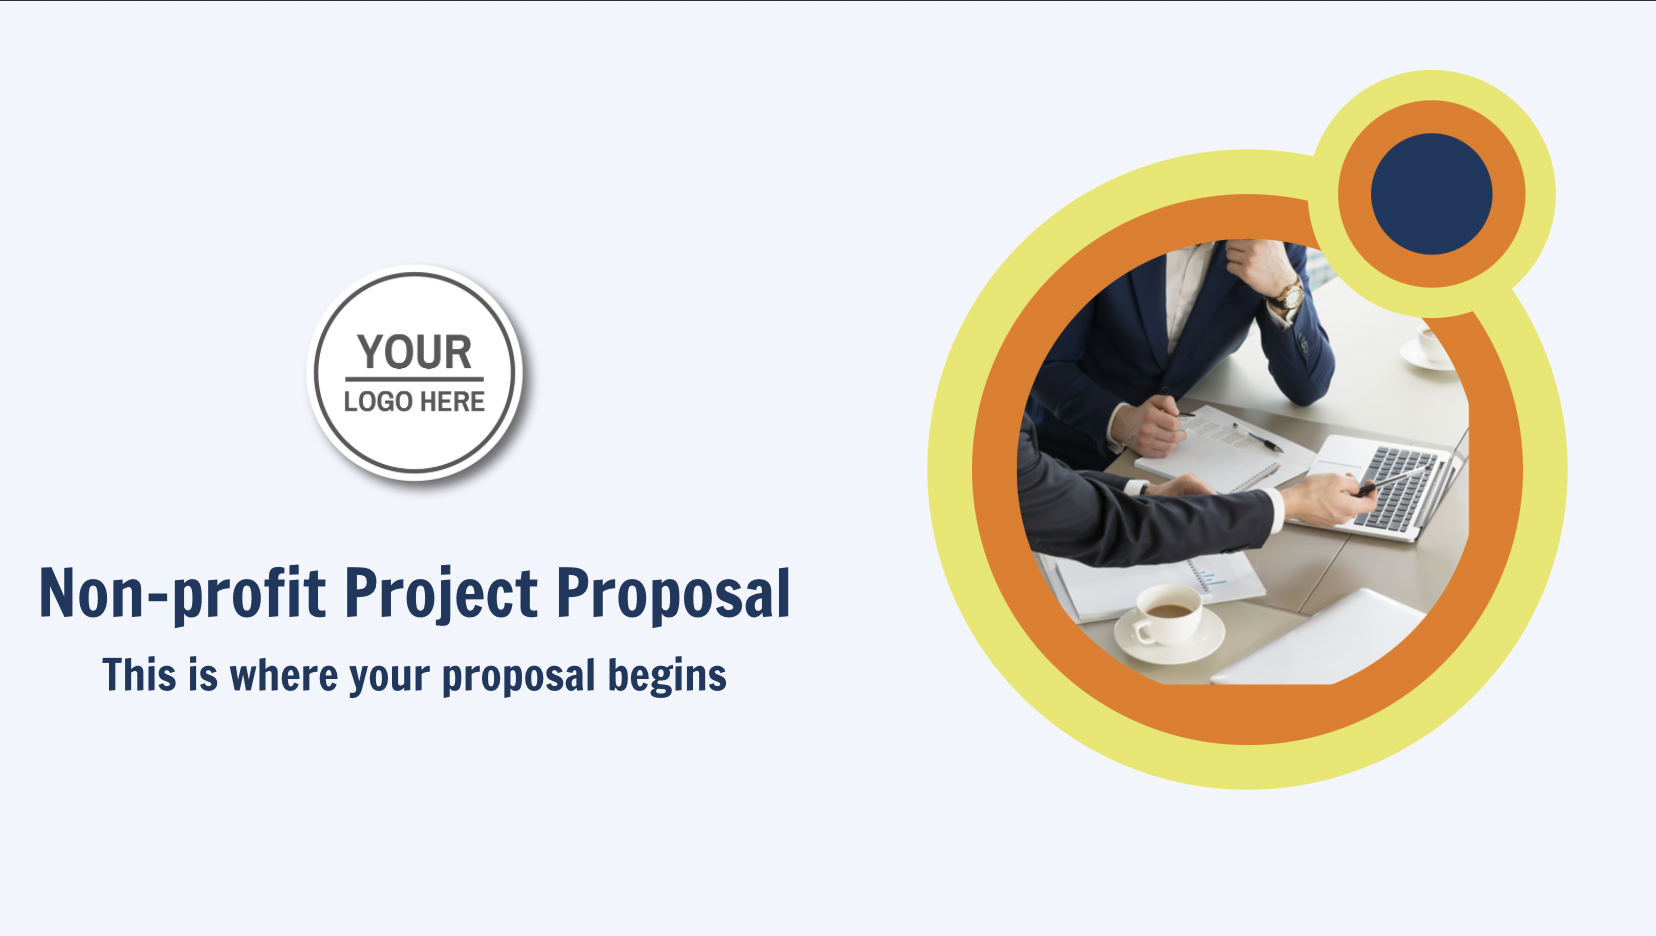 Through outlining the measures and accountability tools, you increase the confidence with regards to the project. Make sure you are using the right templates for your project proposal as it is important to get your points across in the best manner possible.